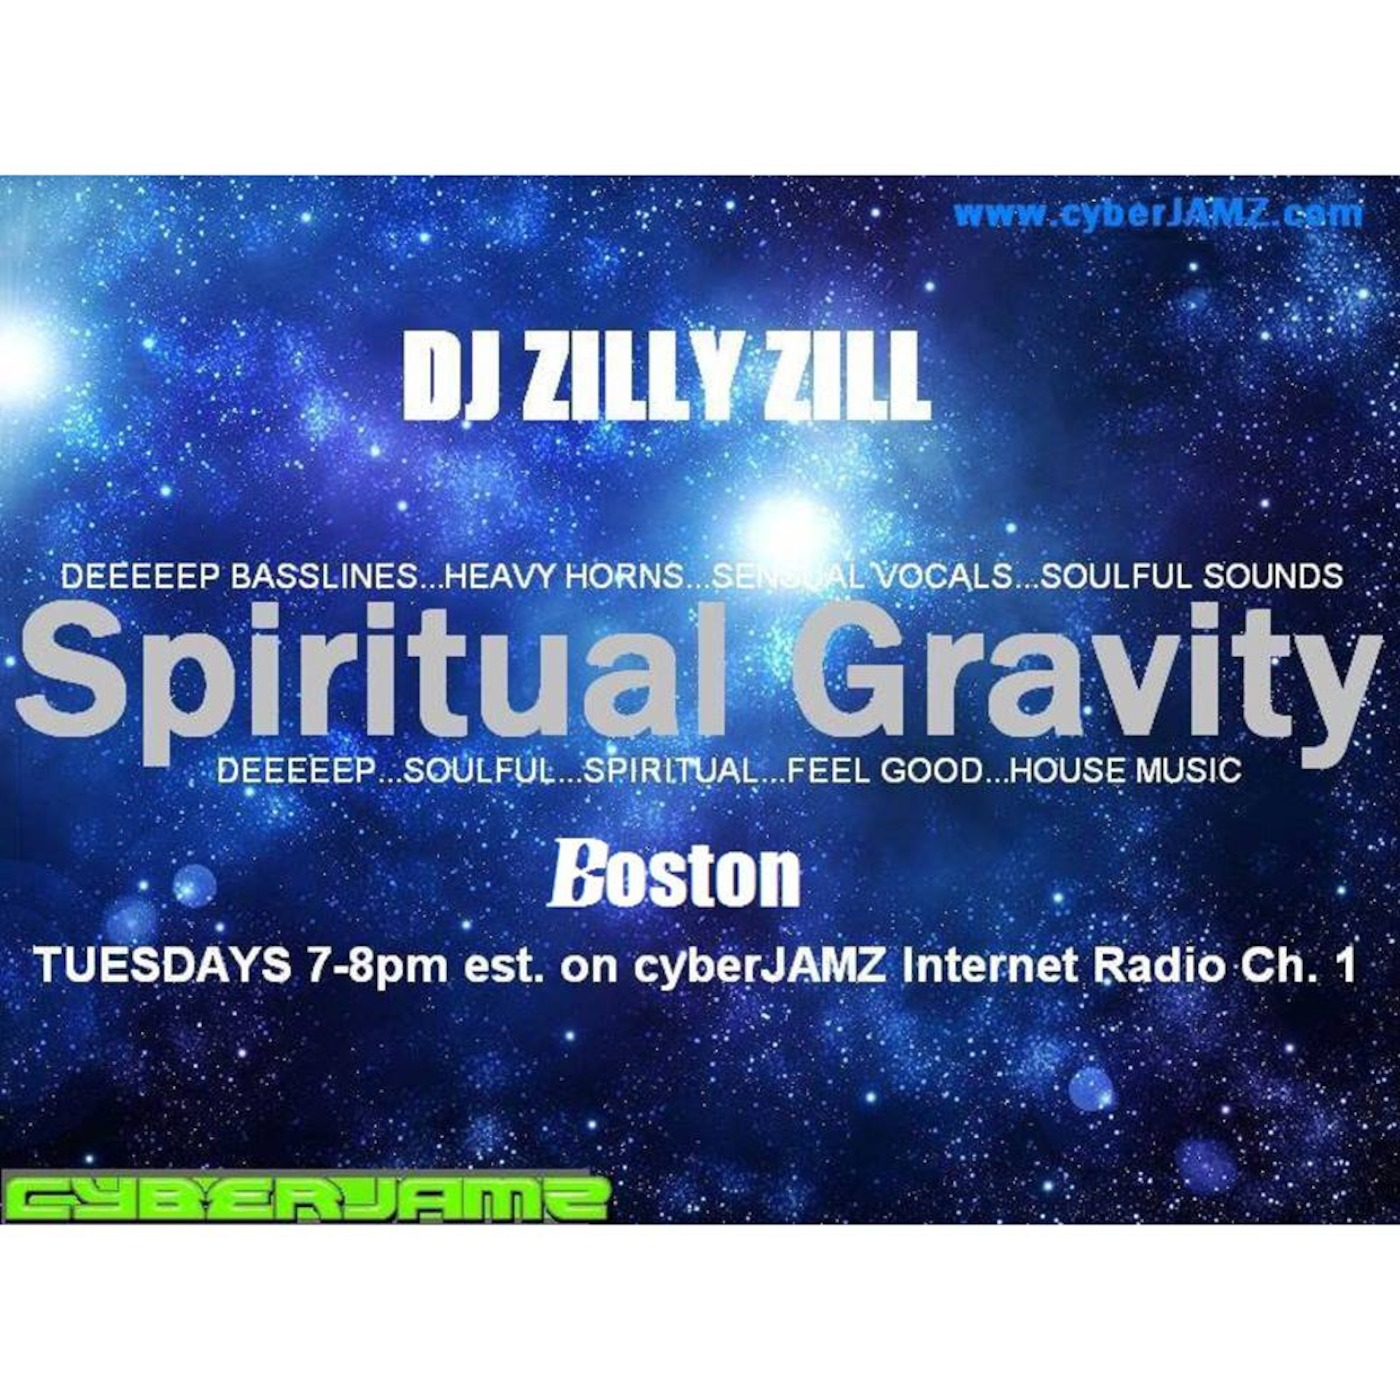 Spiritual Gravity Boston w/ DJ Zilly Zill